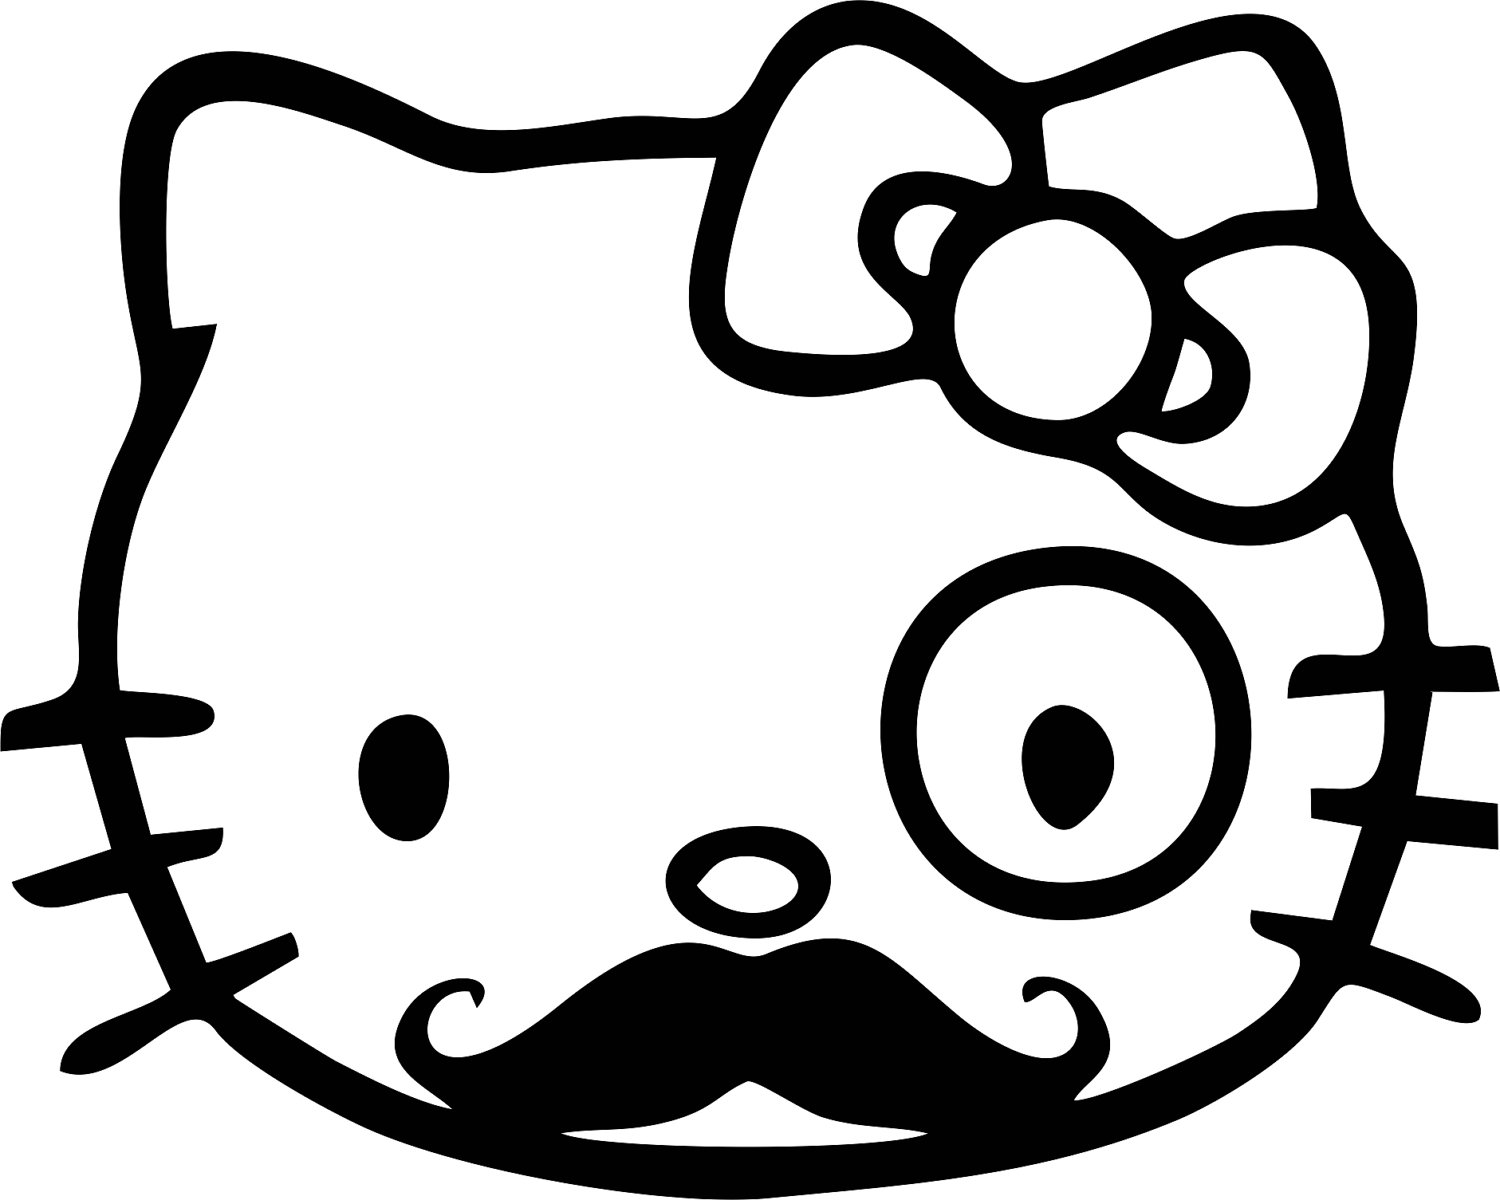 Mustache Coloring Pages at GetDrawings.com   Free for personal use ...